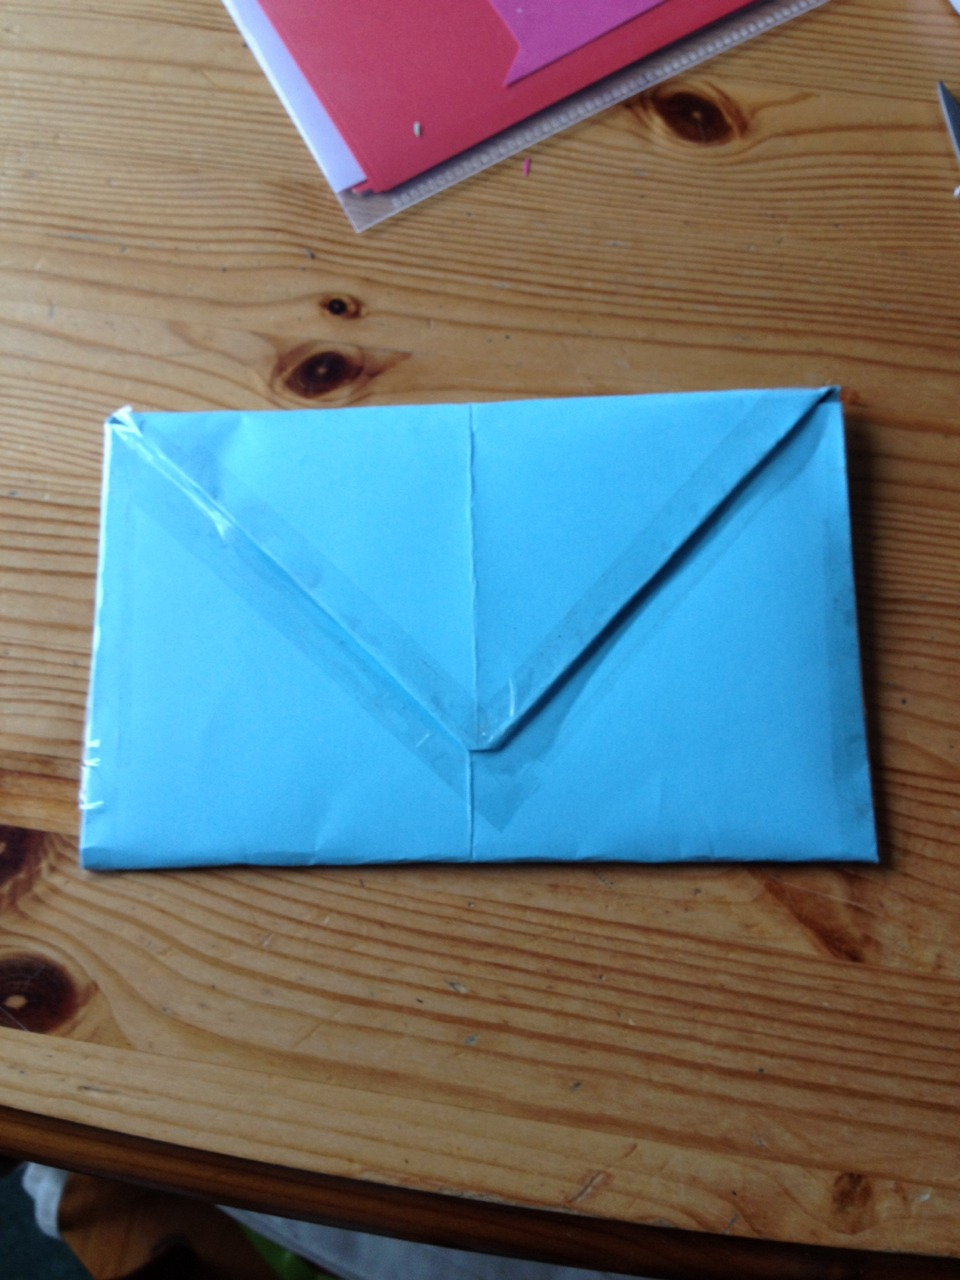 Stick the sides and flap down so that the card is secure and ready to send!